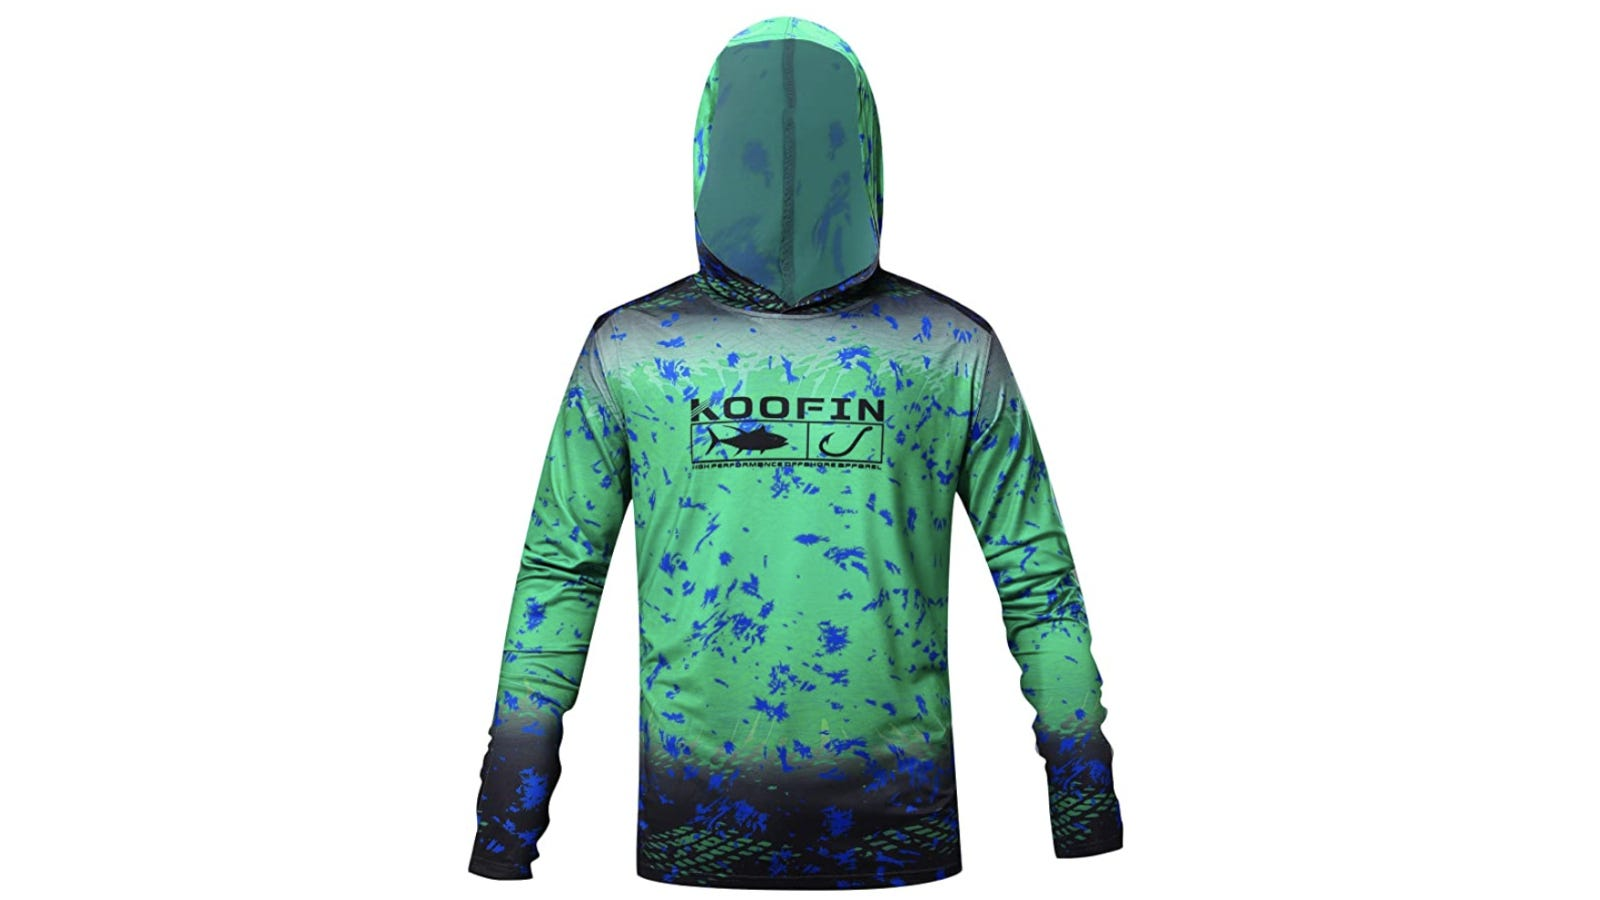 A long-sleeve shirt with a hoodie that's crafted from polyester material and features a variety of blue color patterns and an illustration of a fish and hook across the chest.